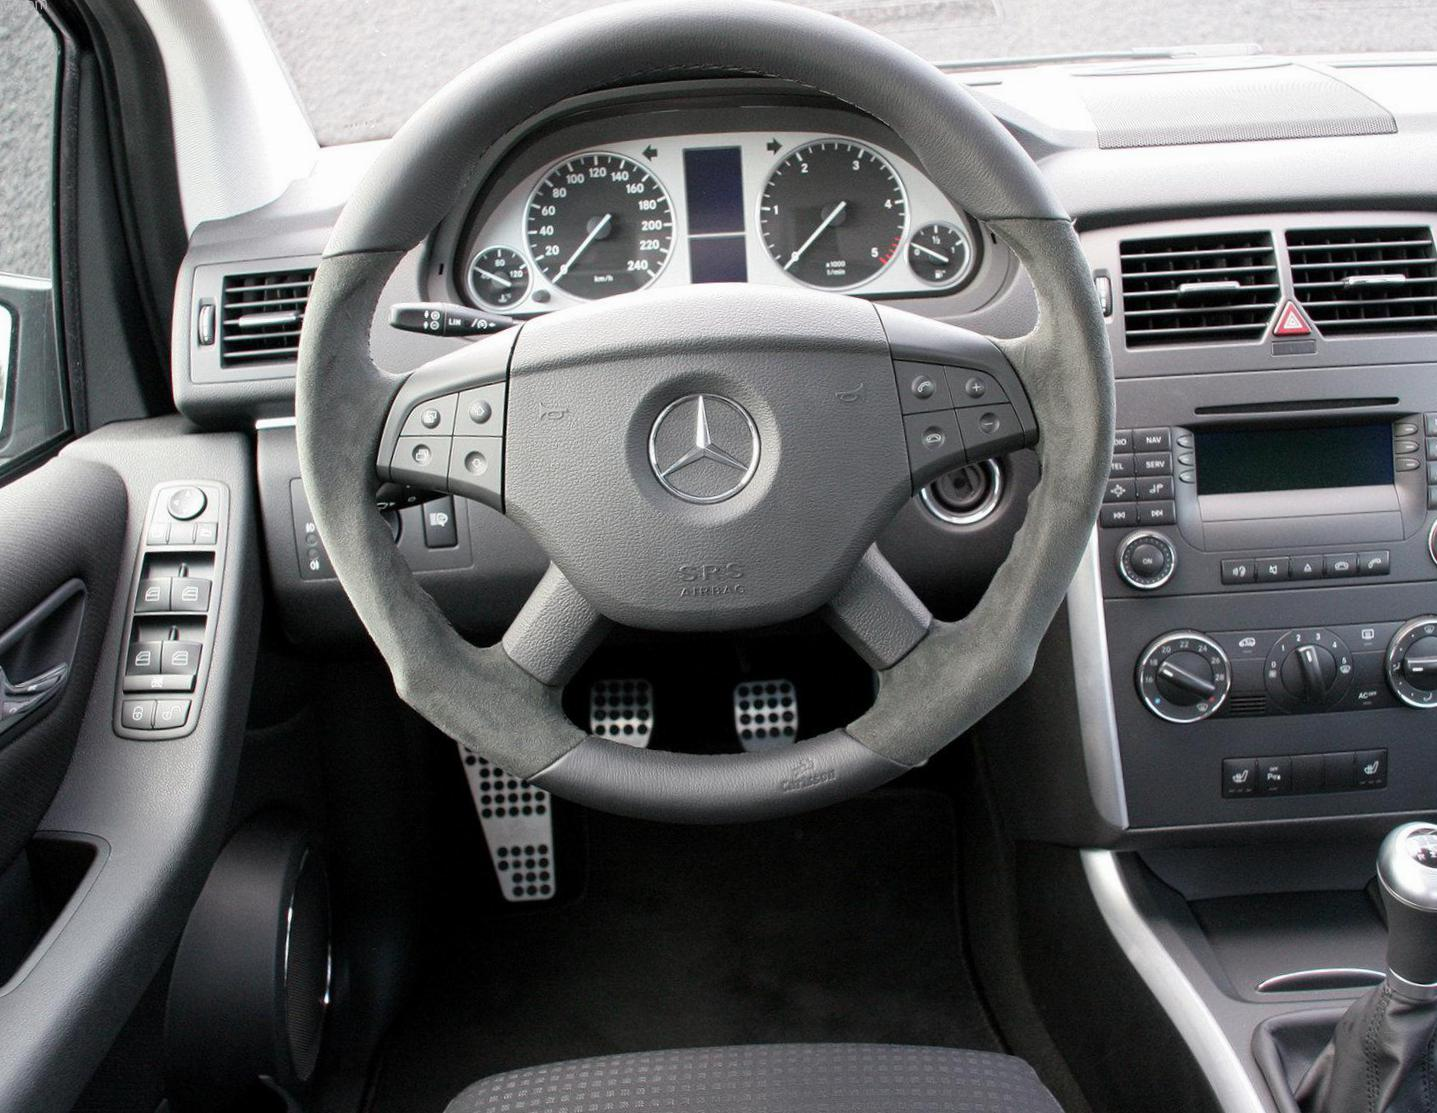 Mercedes B-Class (W245) Specifications 2005